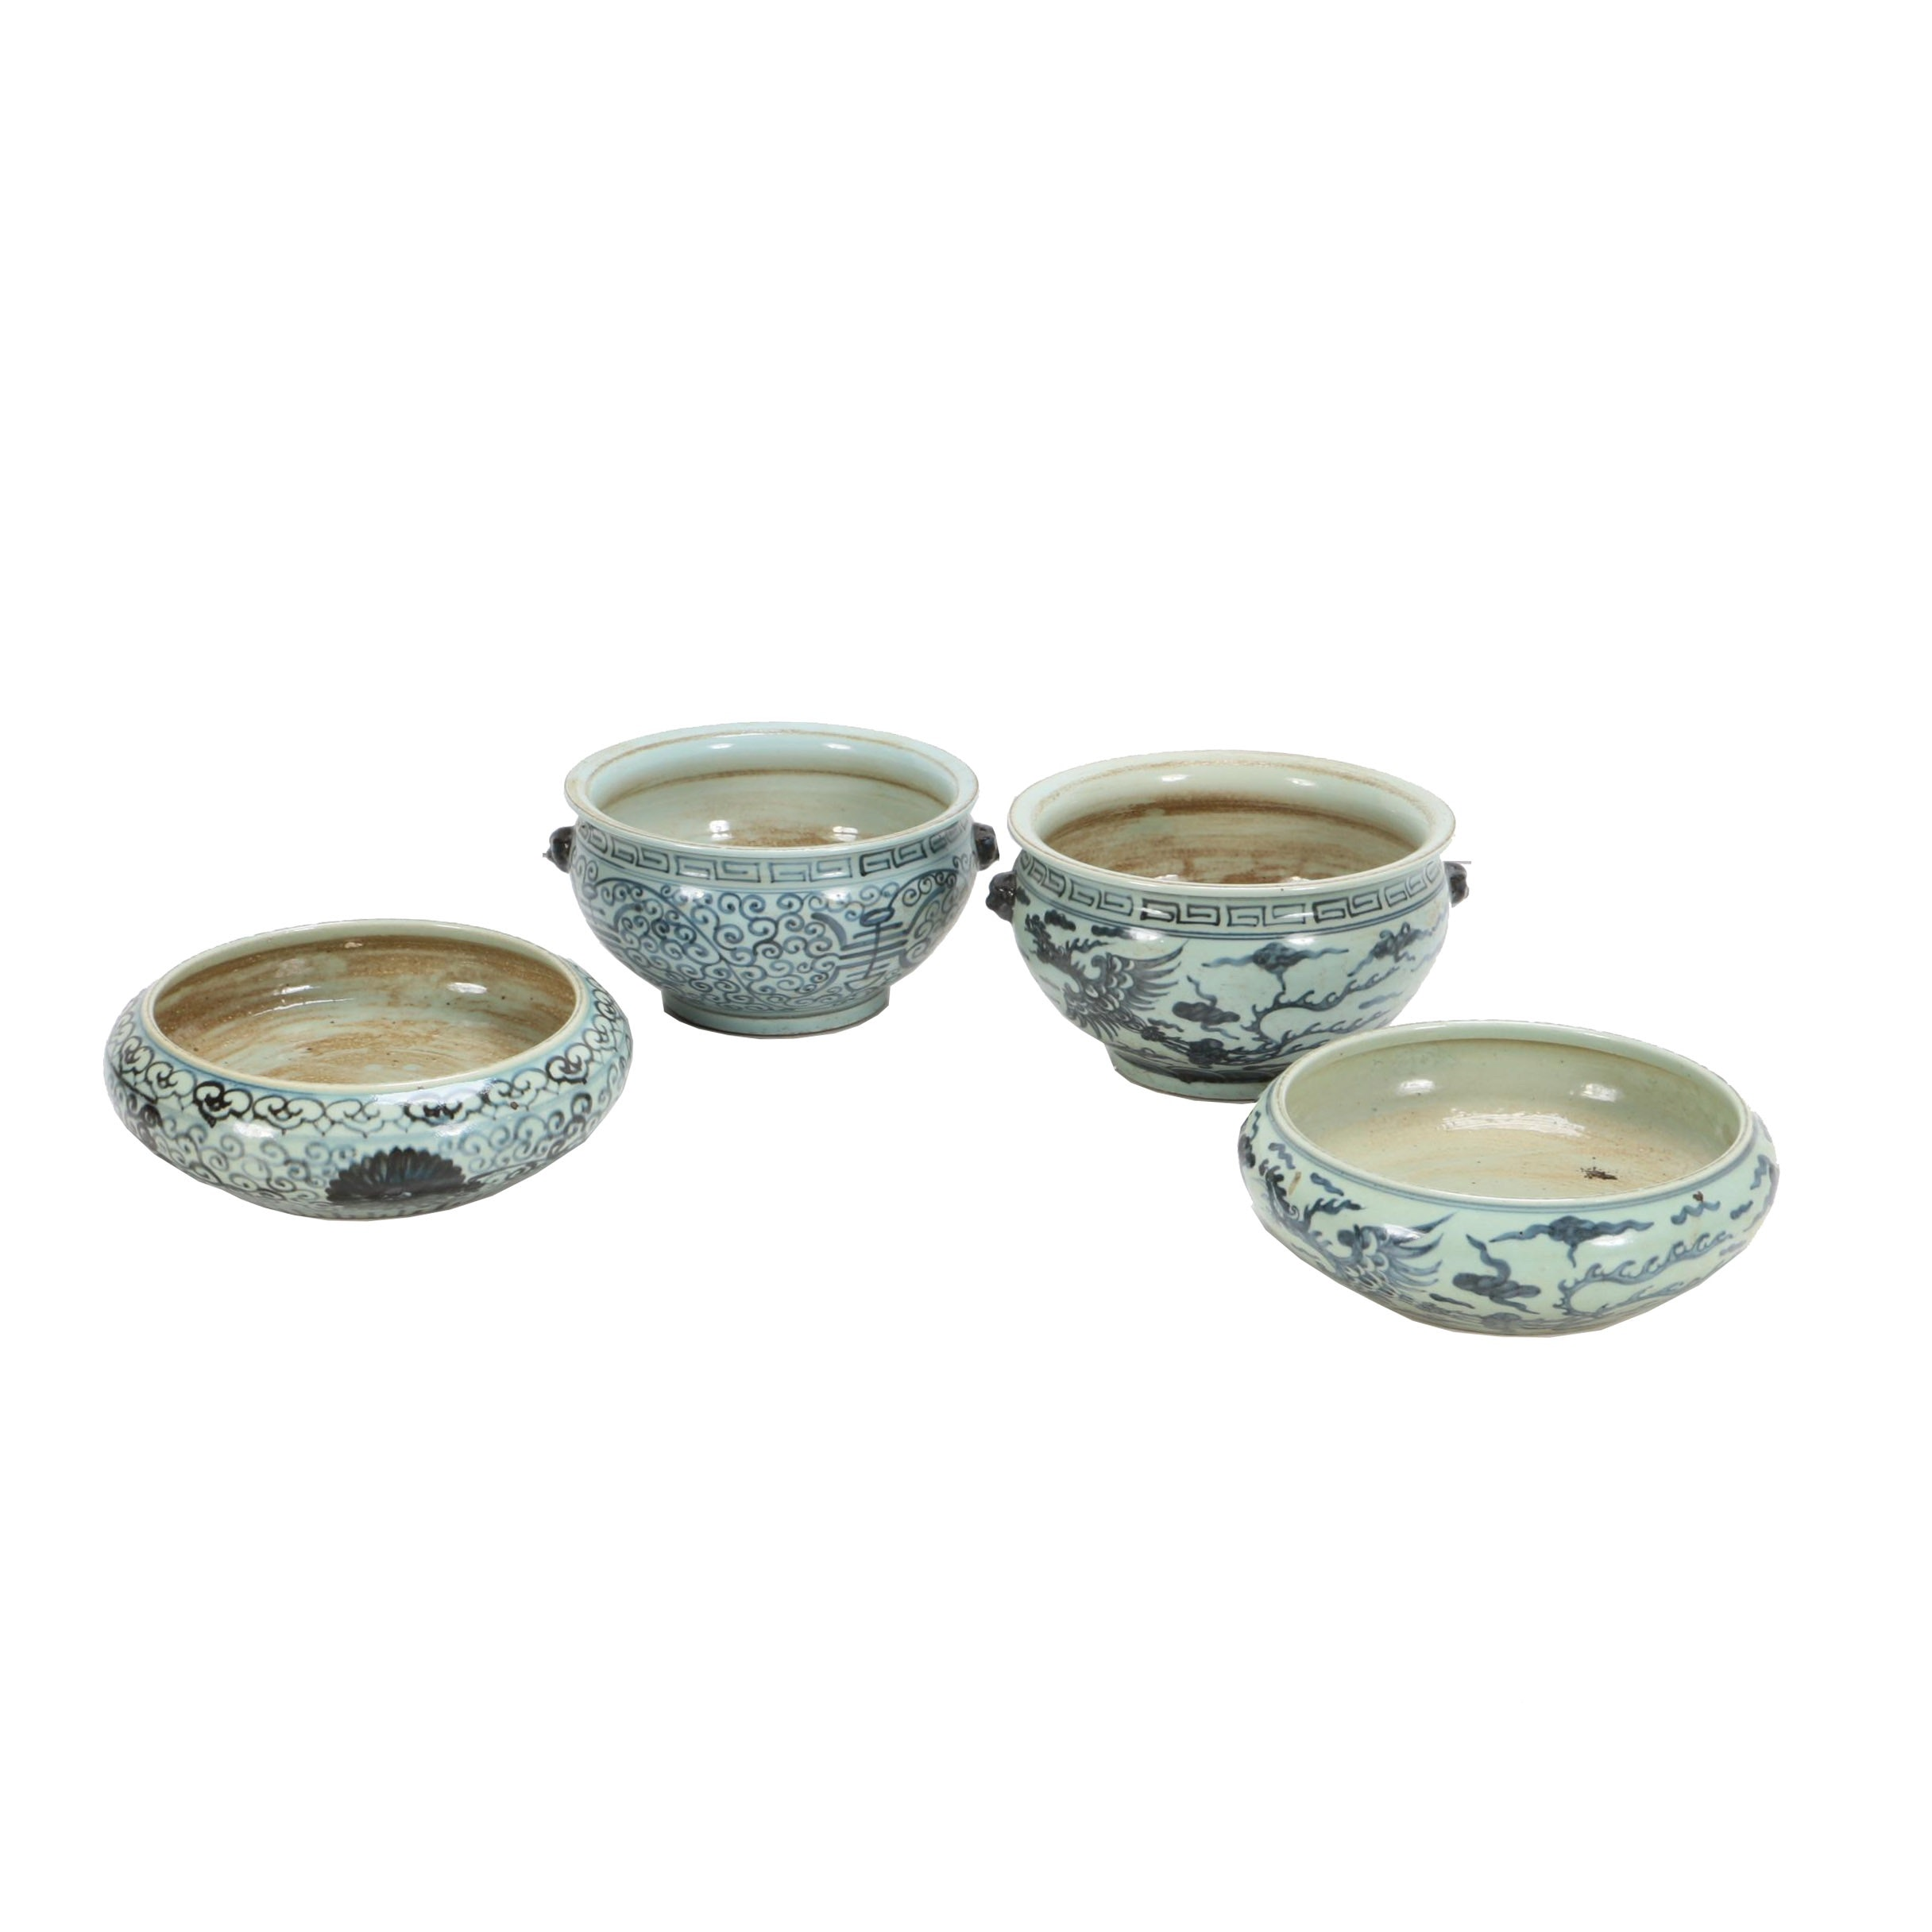 Chinese Hand-Painted Blue and White Porcelain Alms Bowls and Brush Washers